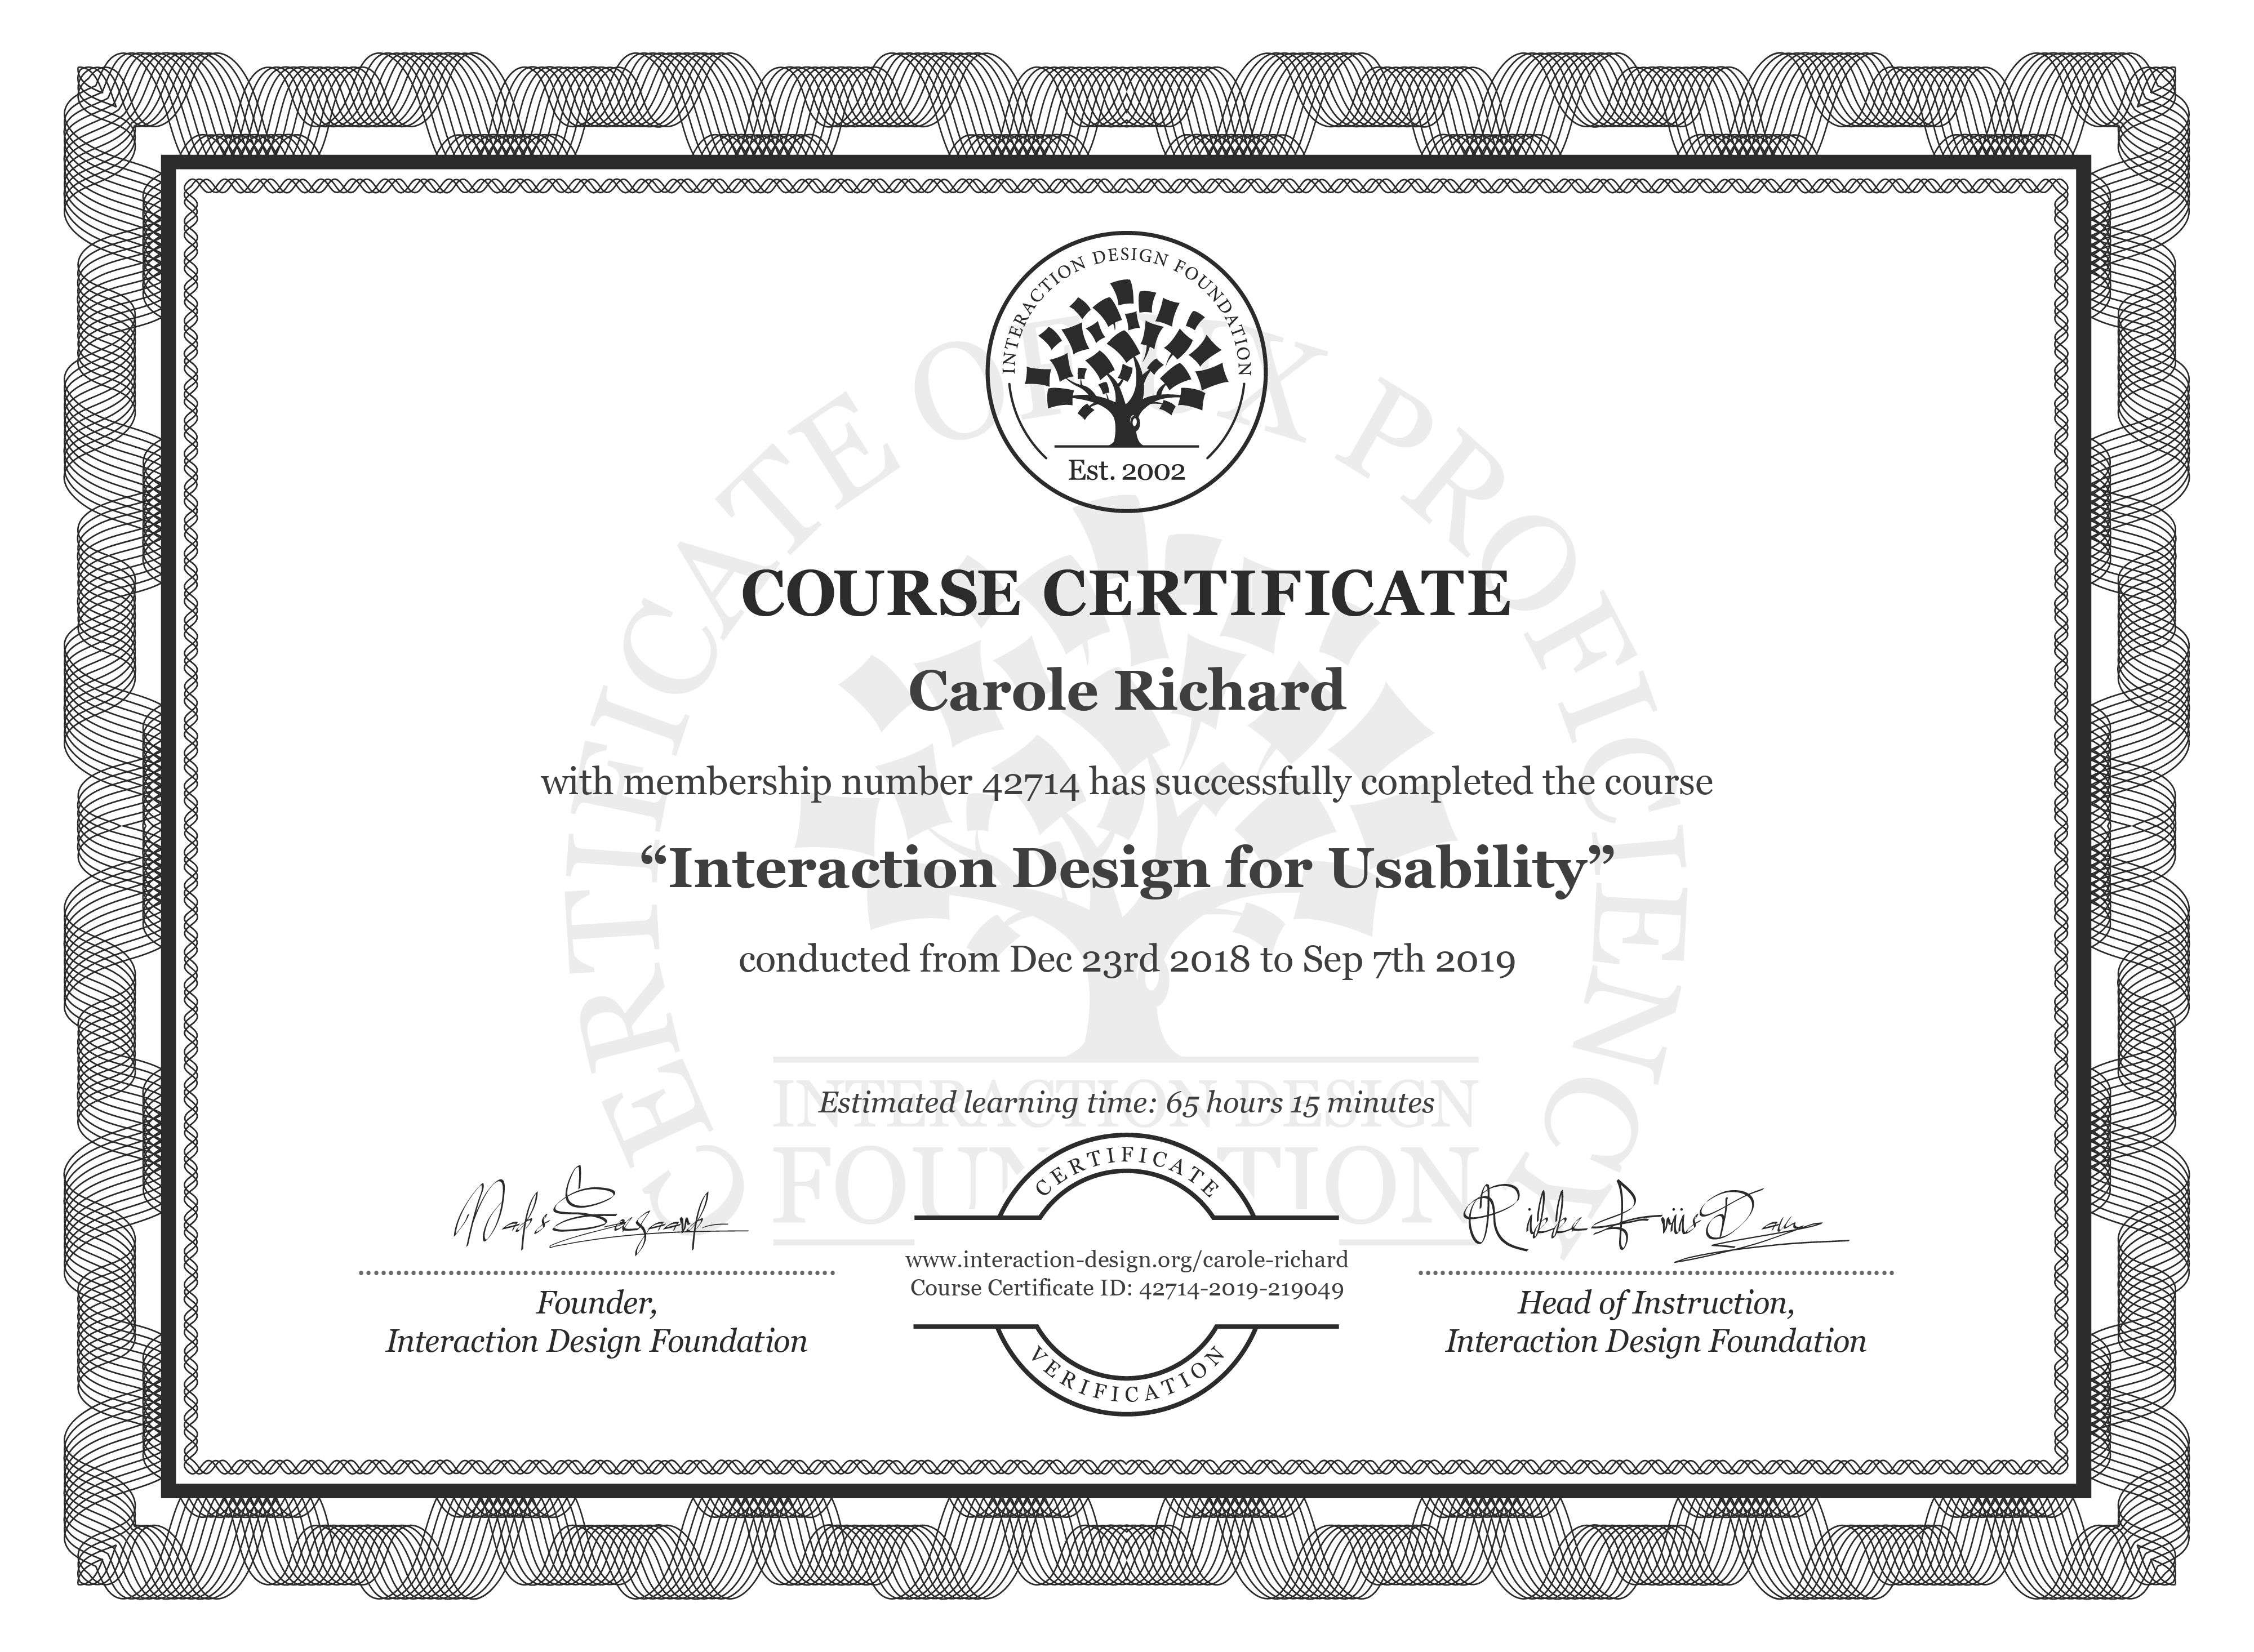 Carole Richard's Course Certificate: Interaction Design for Usability